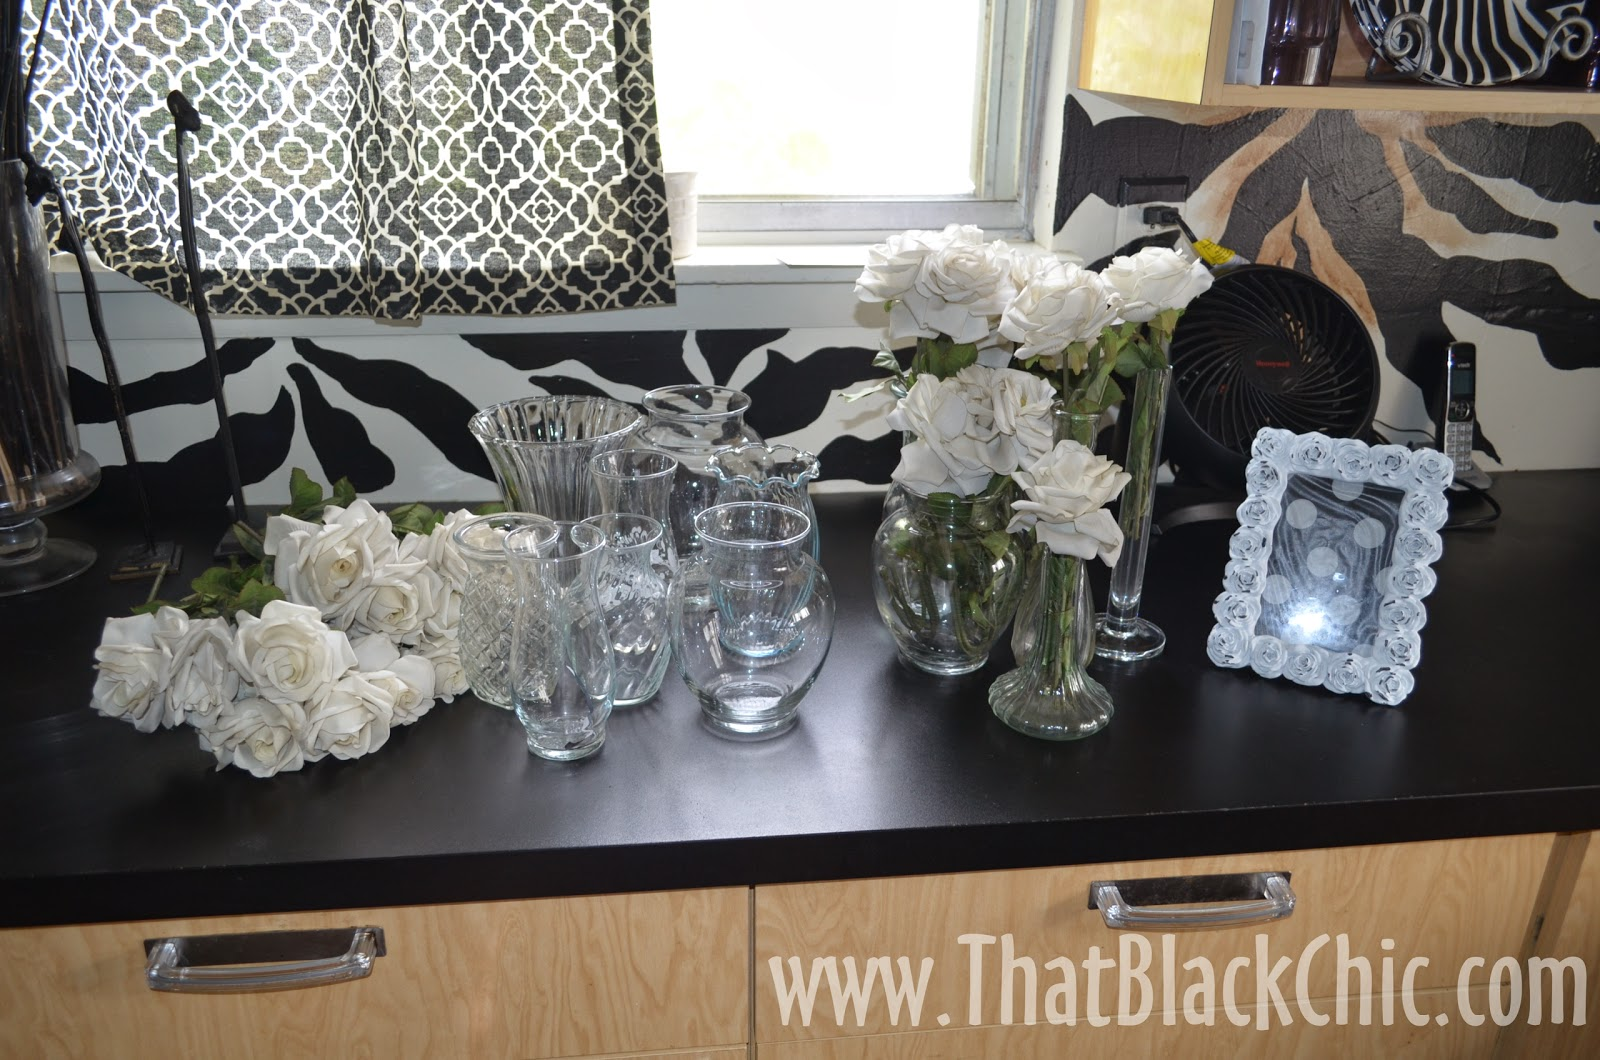 Diy table centerpieces made for conversation that black chic total spent 1500 for a priceless experience i gave each person the picture frames and a vase of flowers as a parting gift jeuxipadfo Choice Image